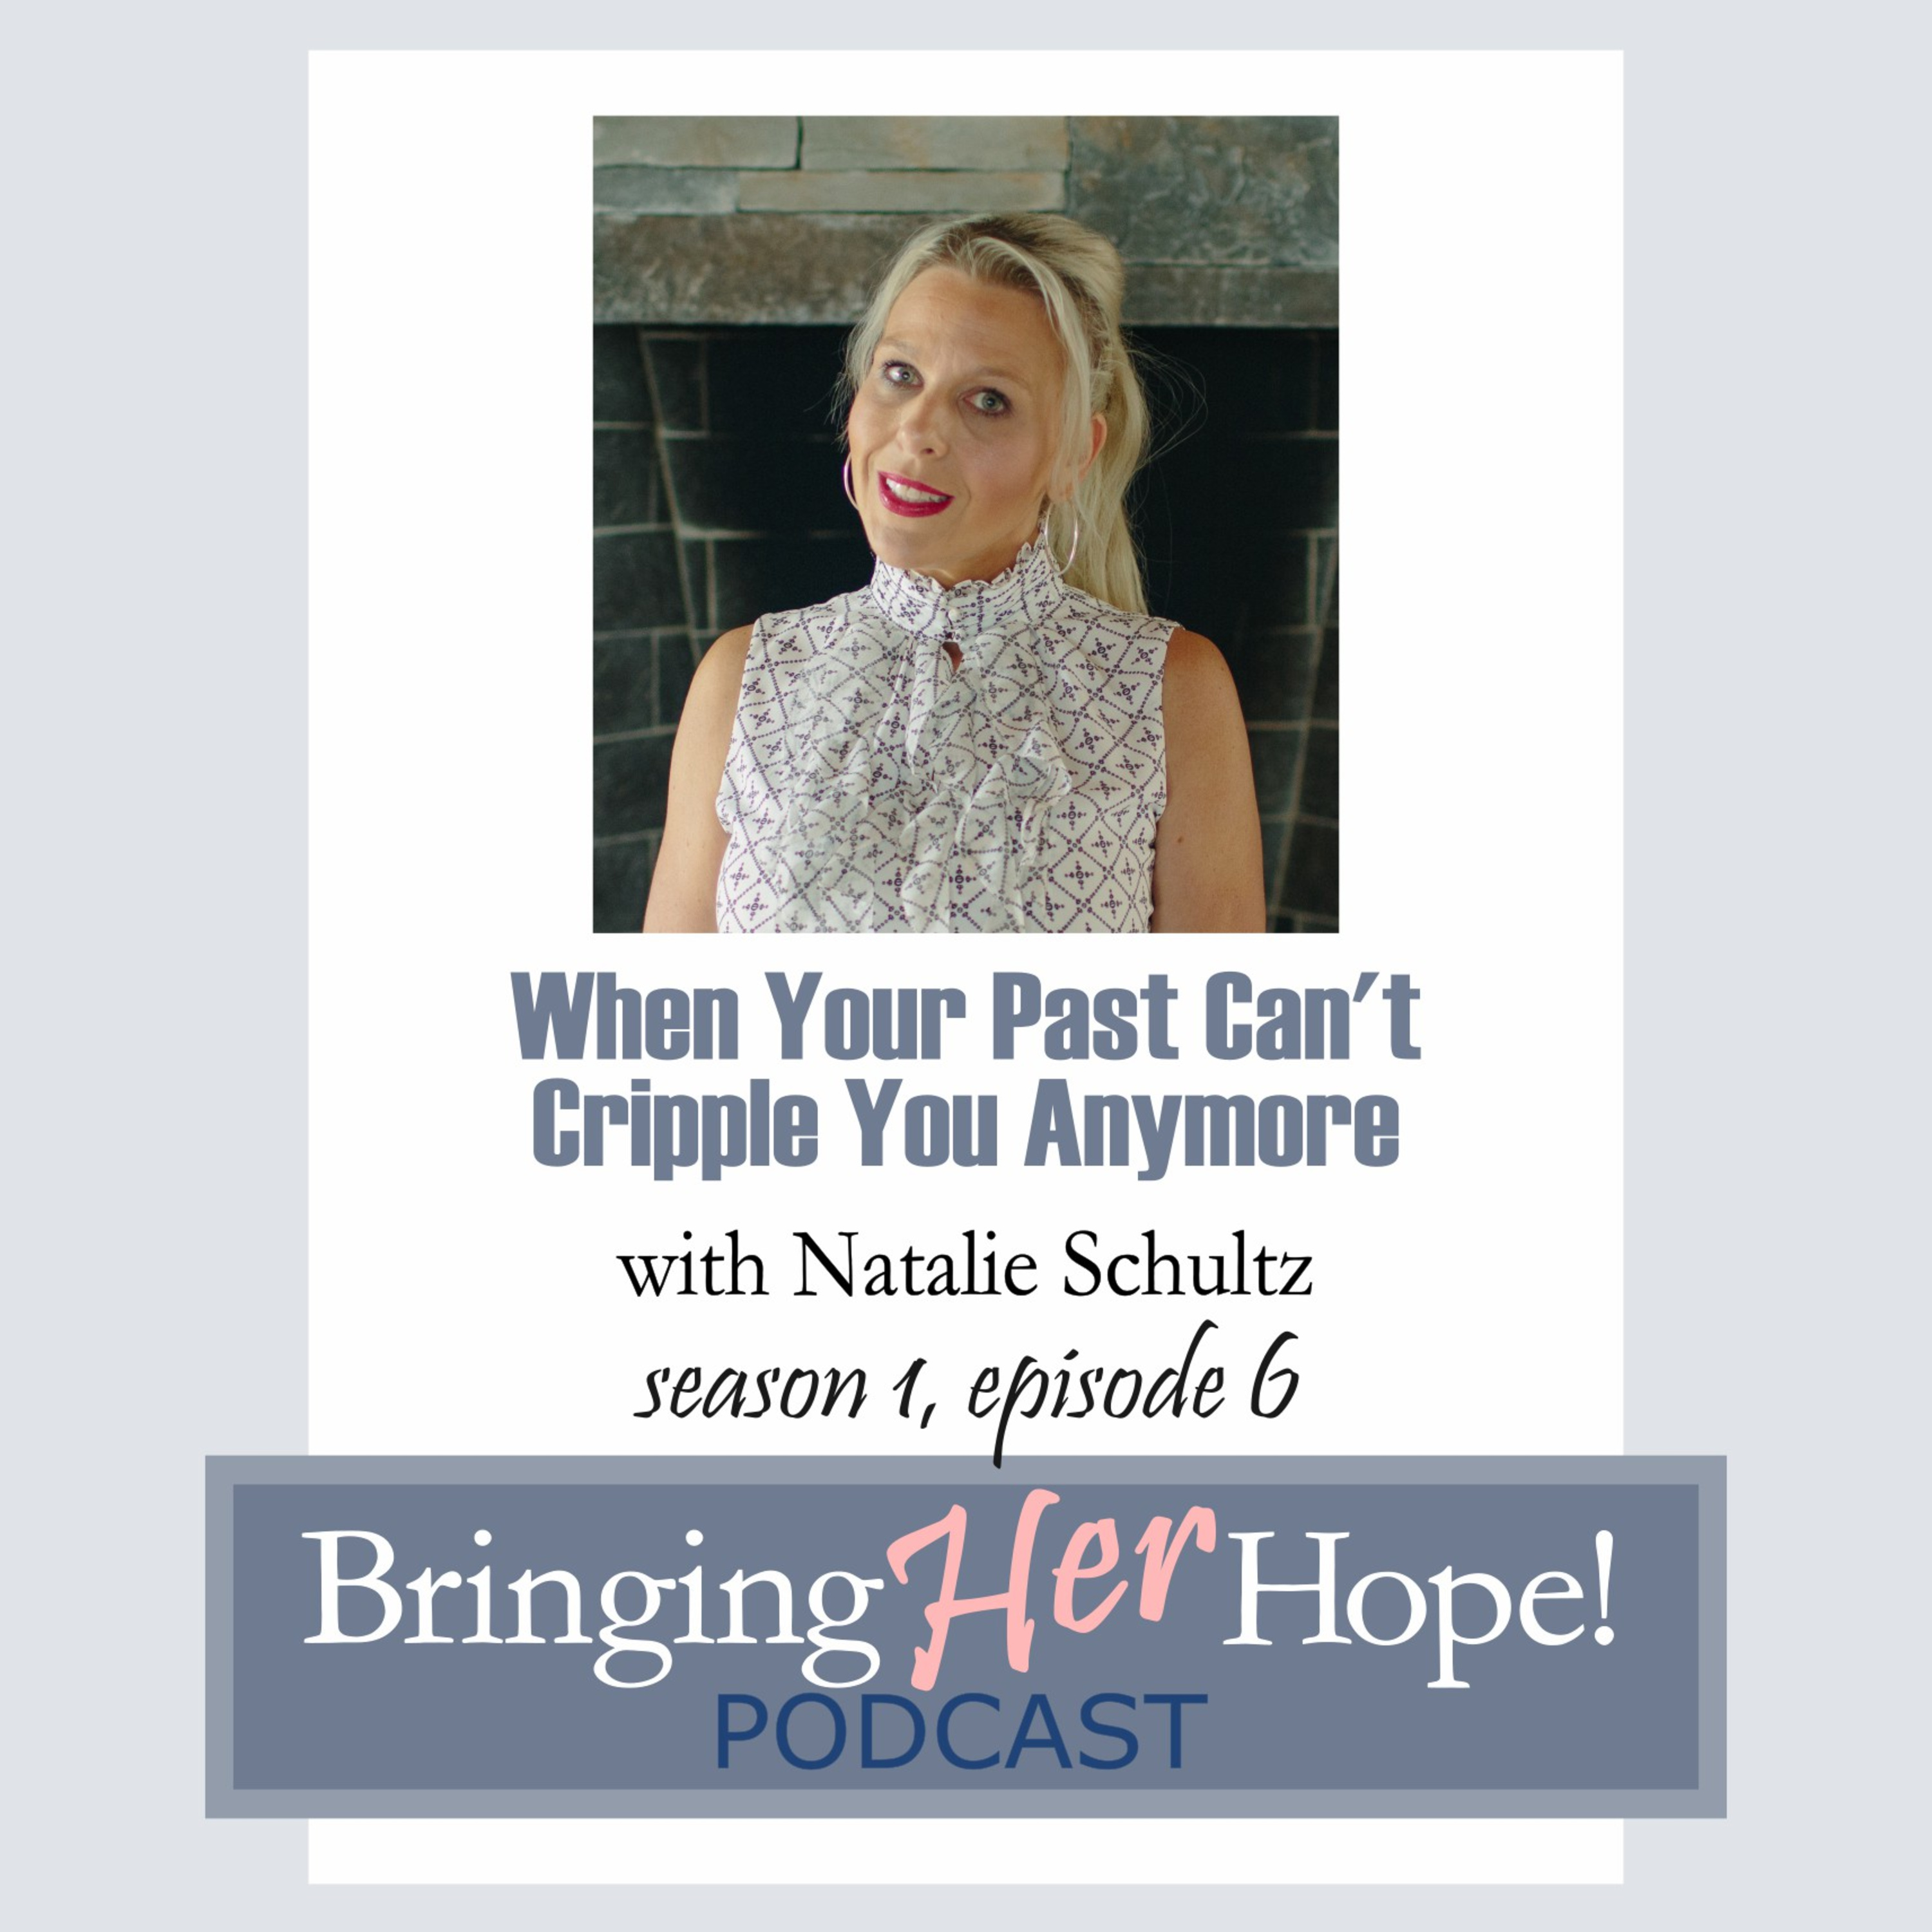 Episode 6: When your past can't cripple you anymore with special guest Natalie Schulz